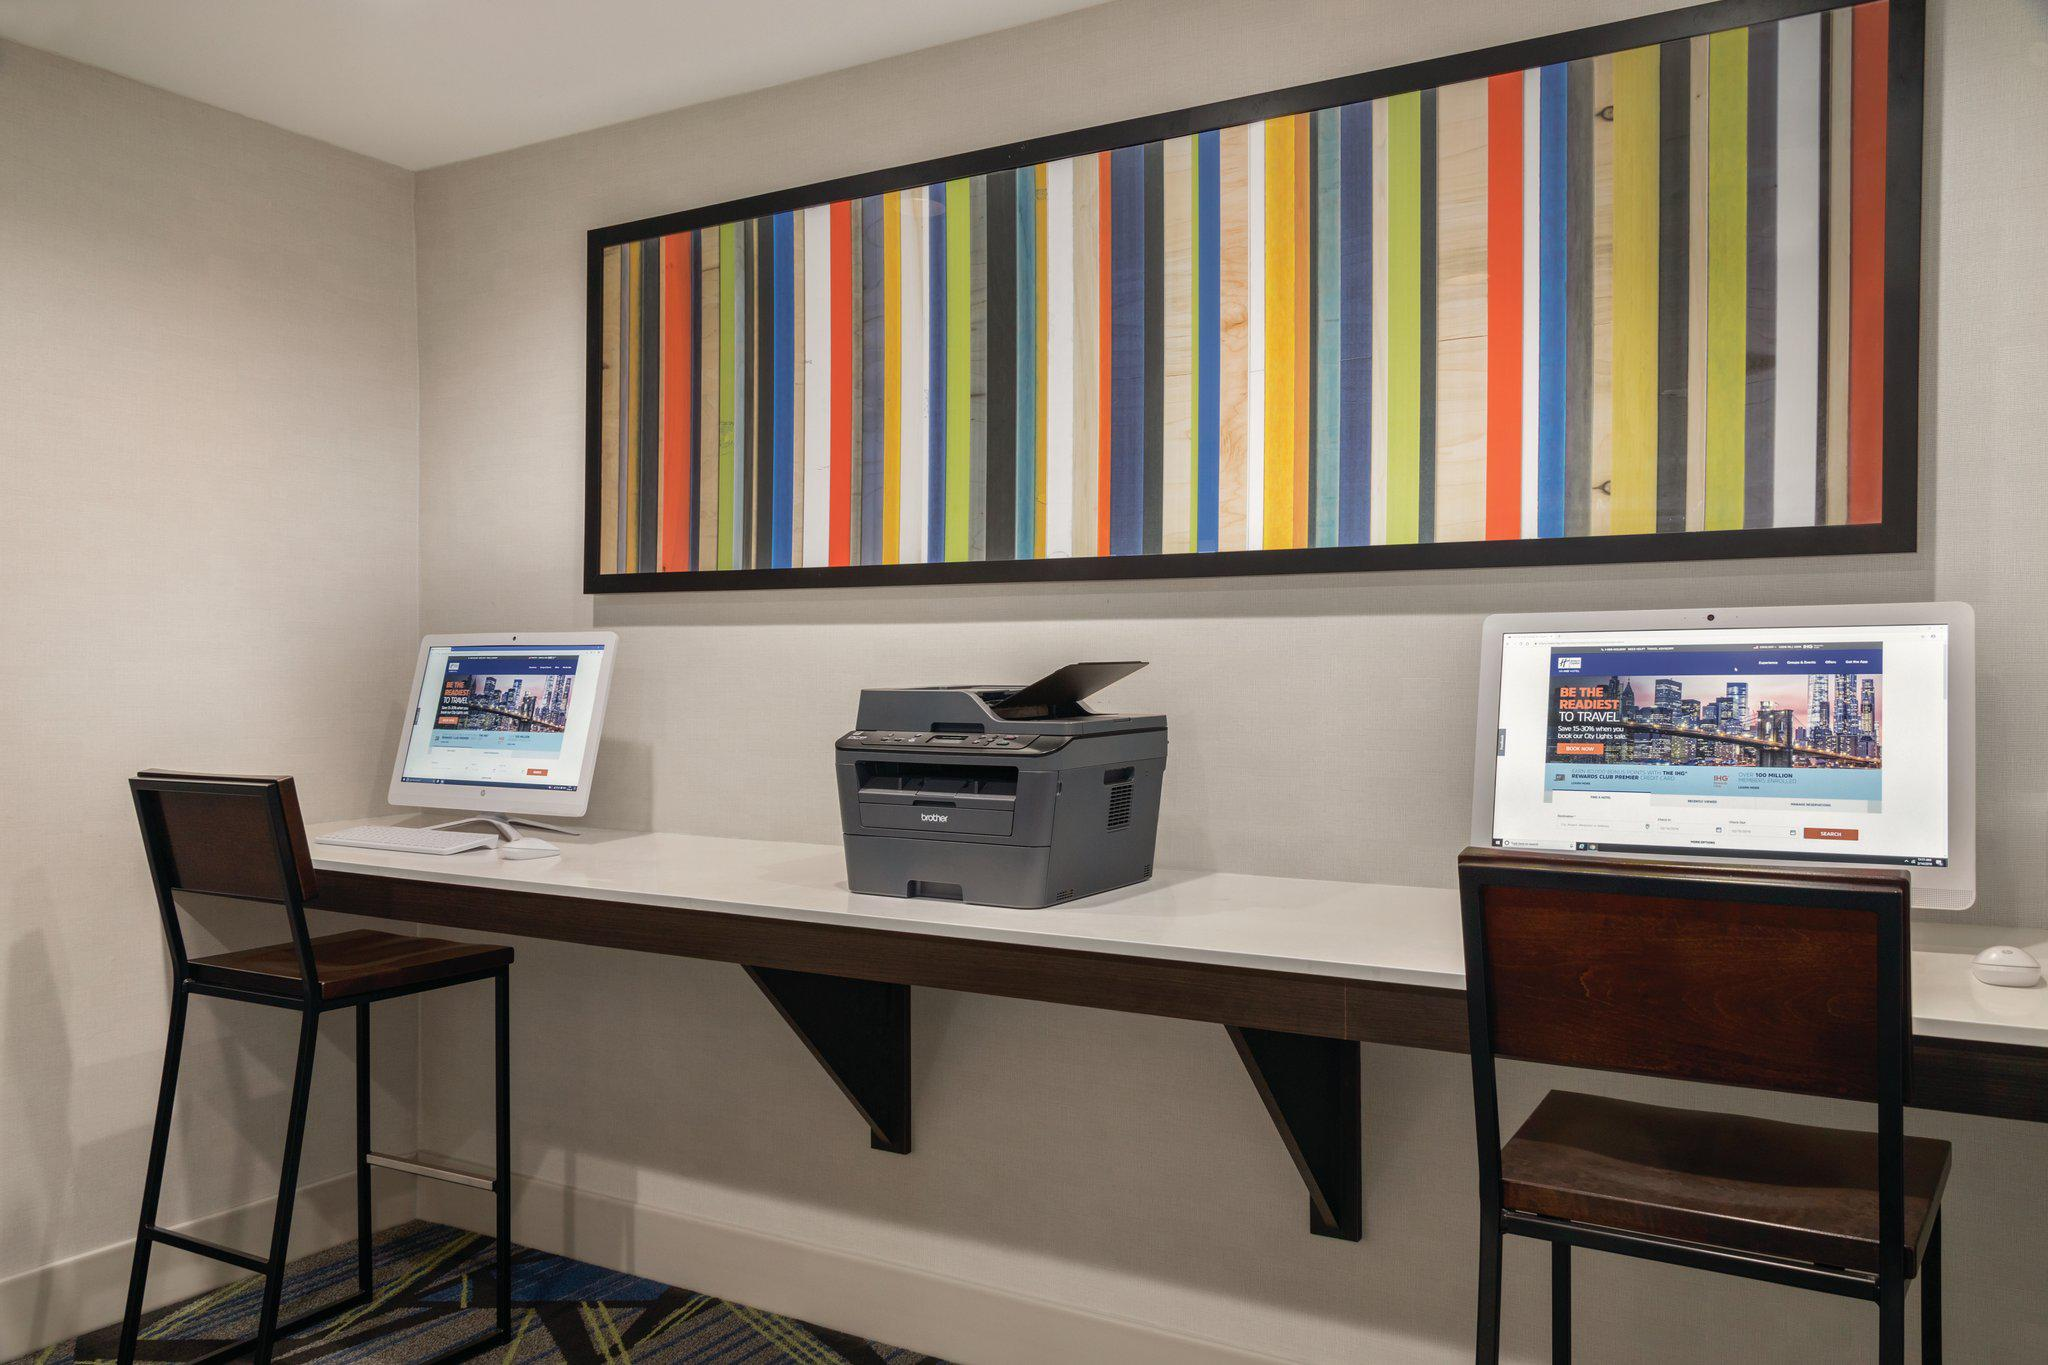 Holiday Inn Express & Suites Lawton-Fort Sill, an IHG Hotel